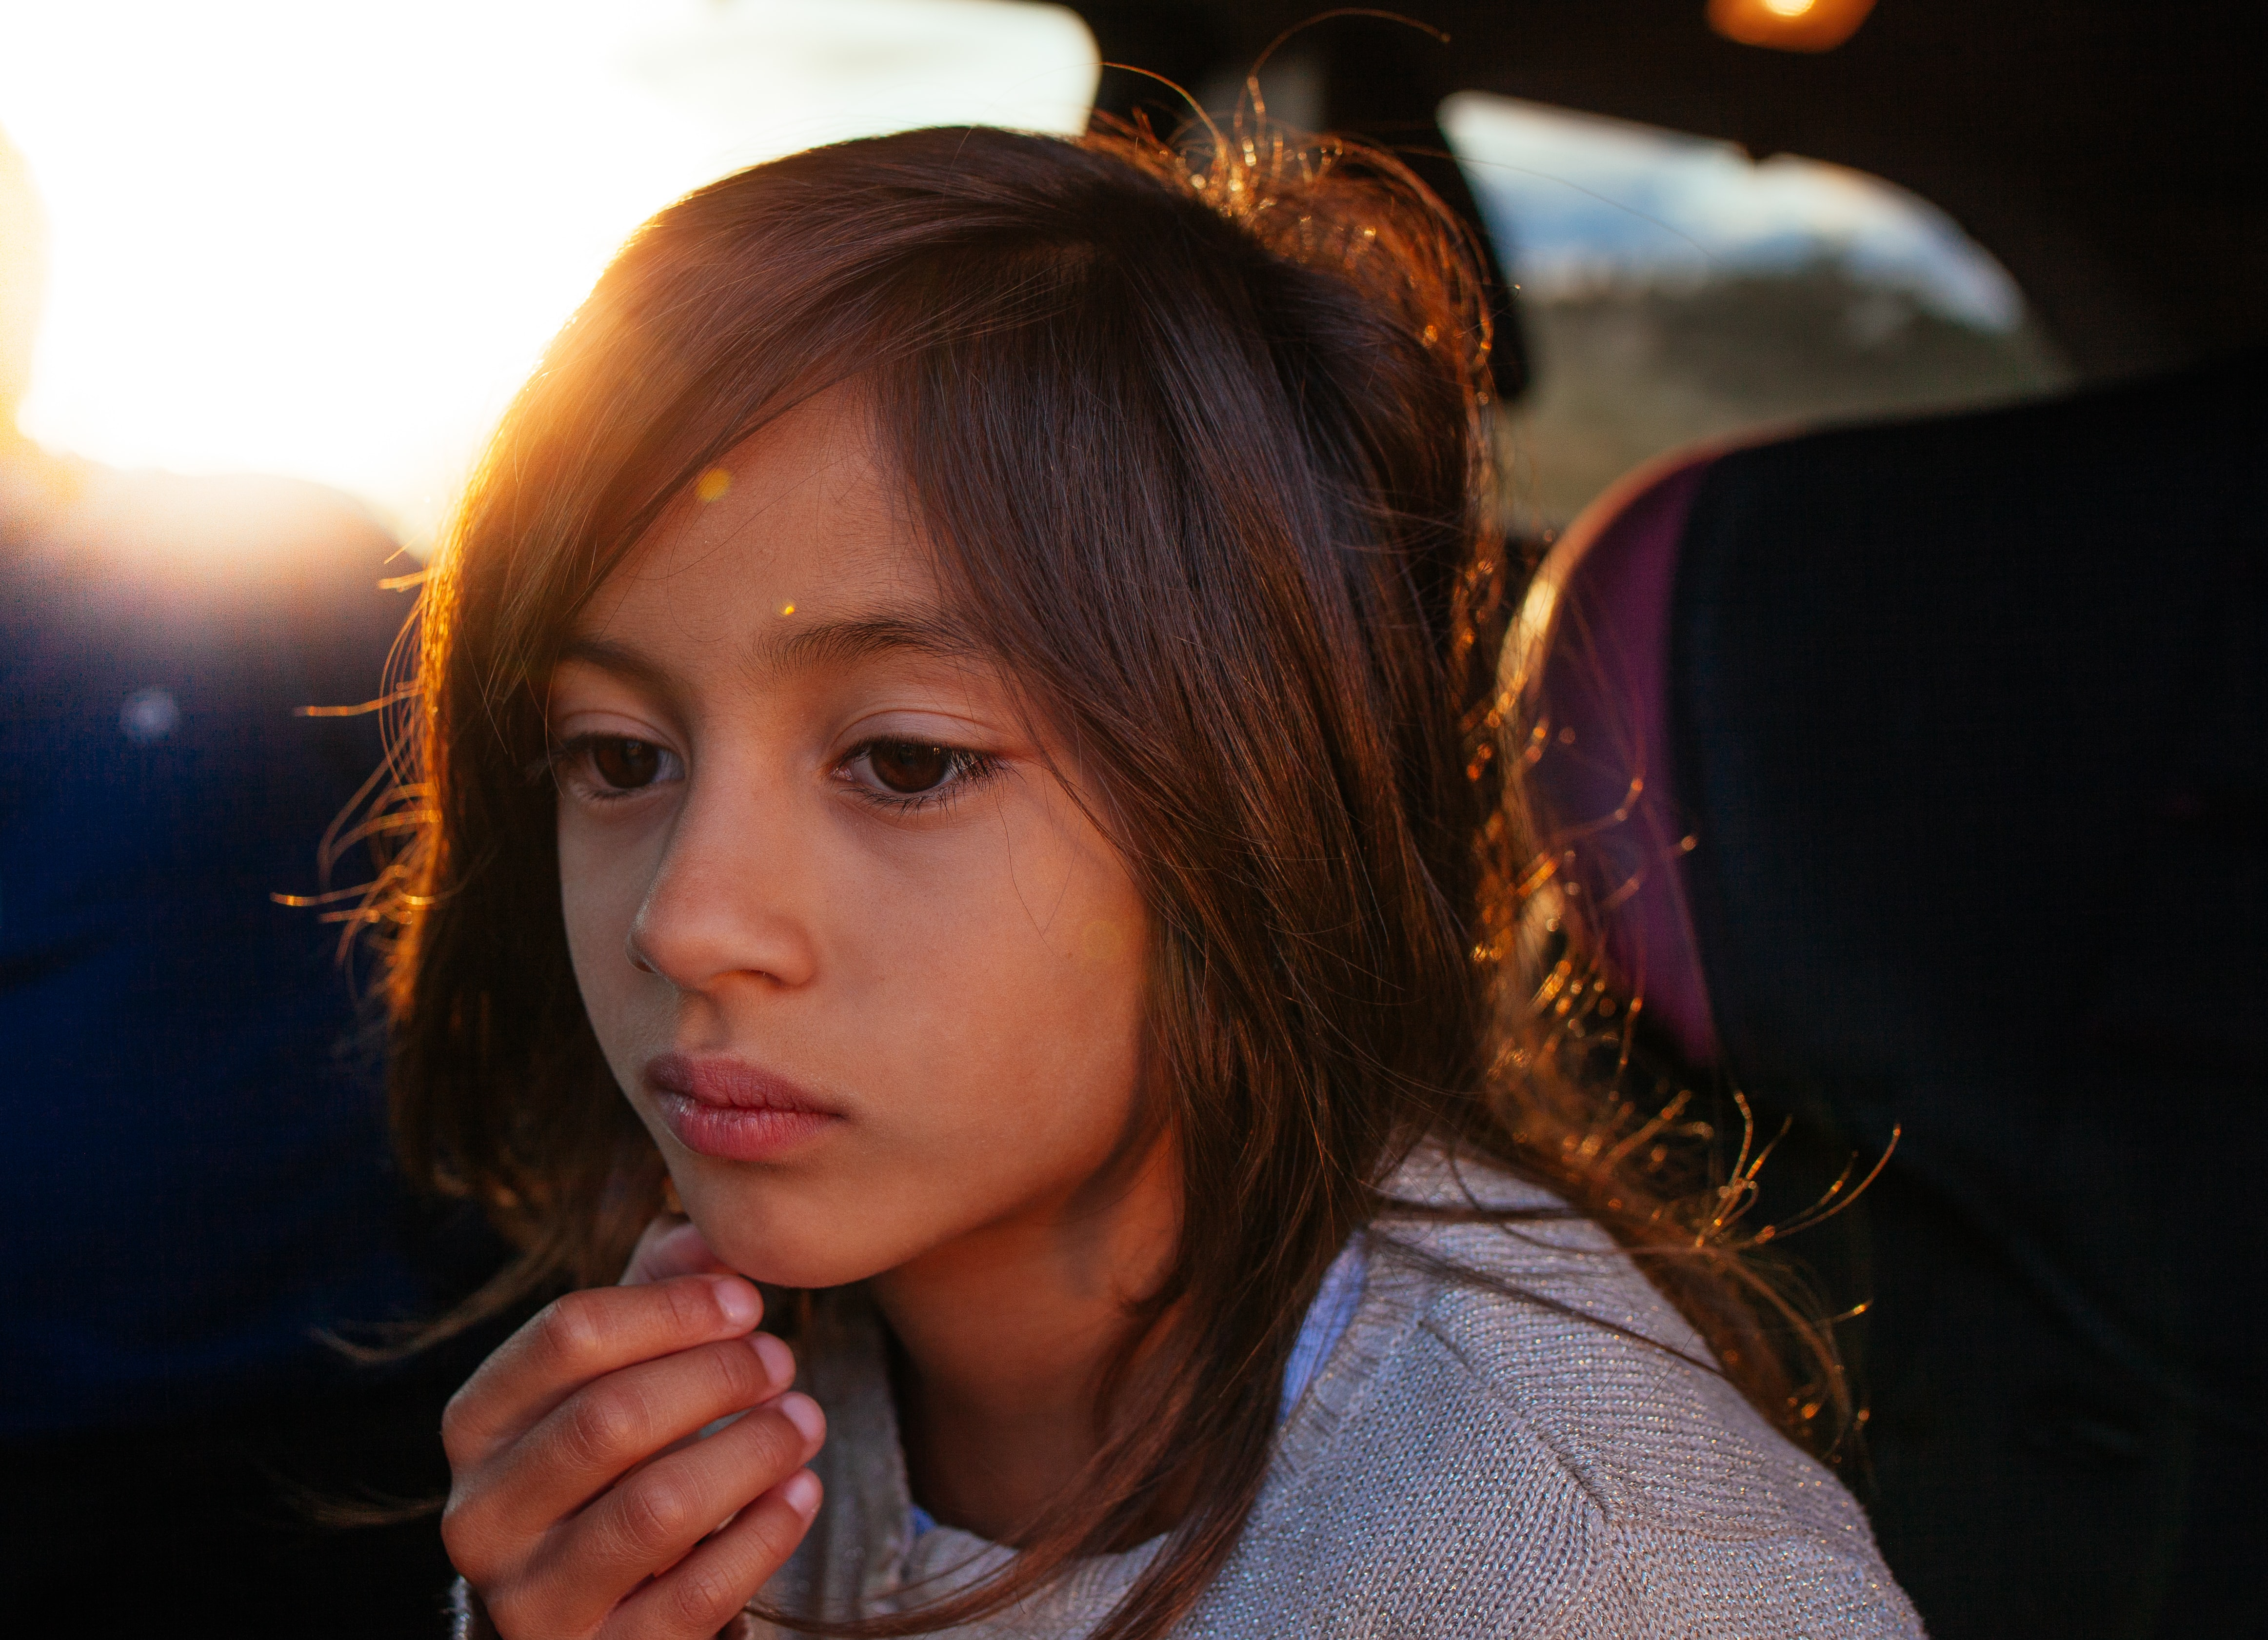 Sad young child sitting in a car alone